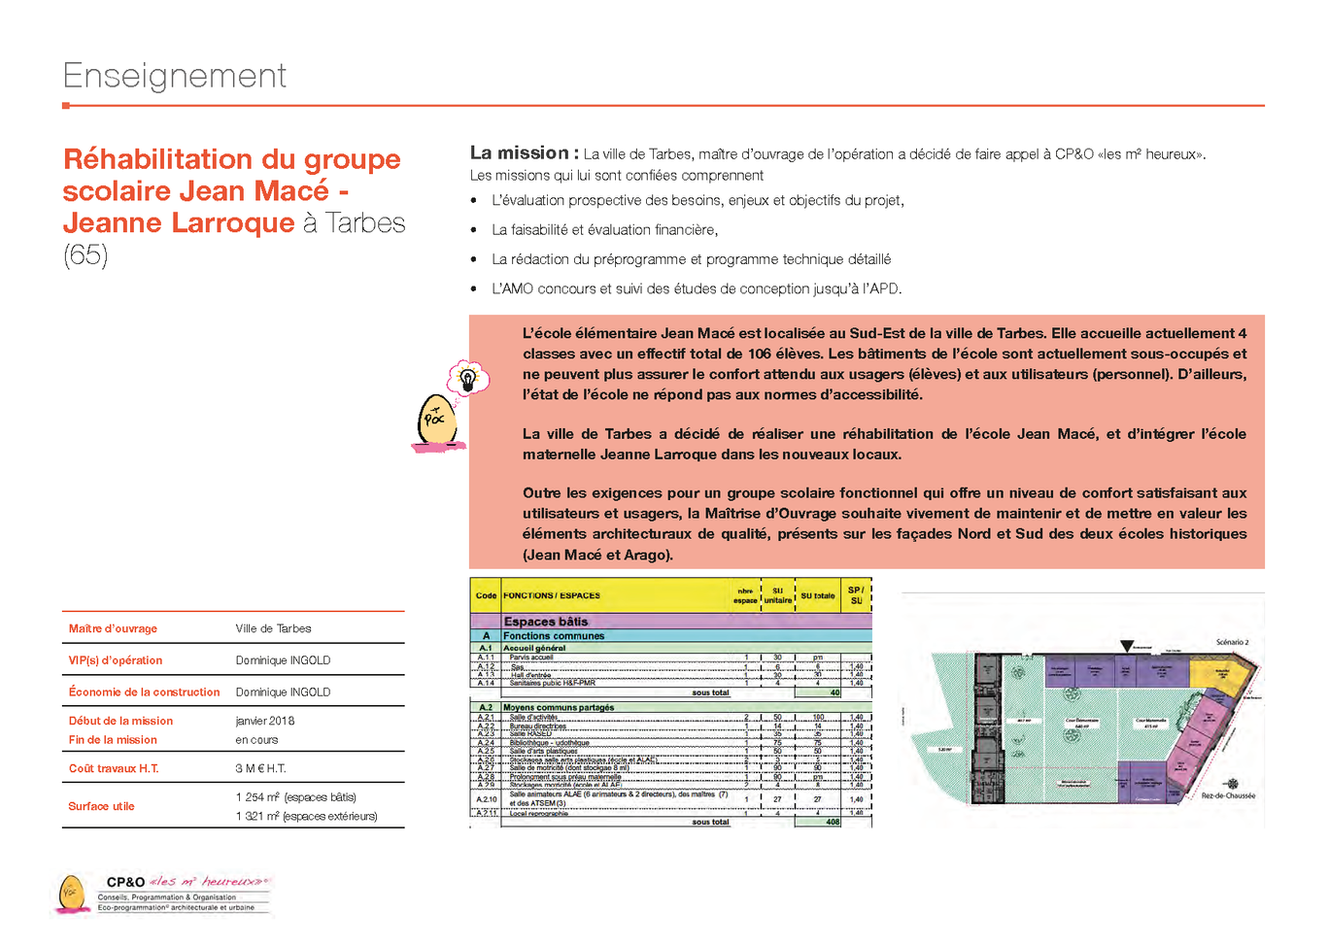 enseignement_Page_10.png